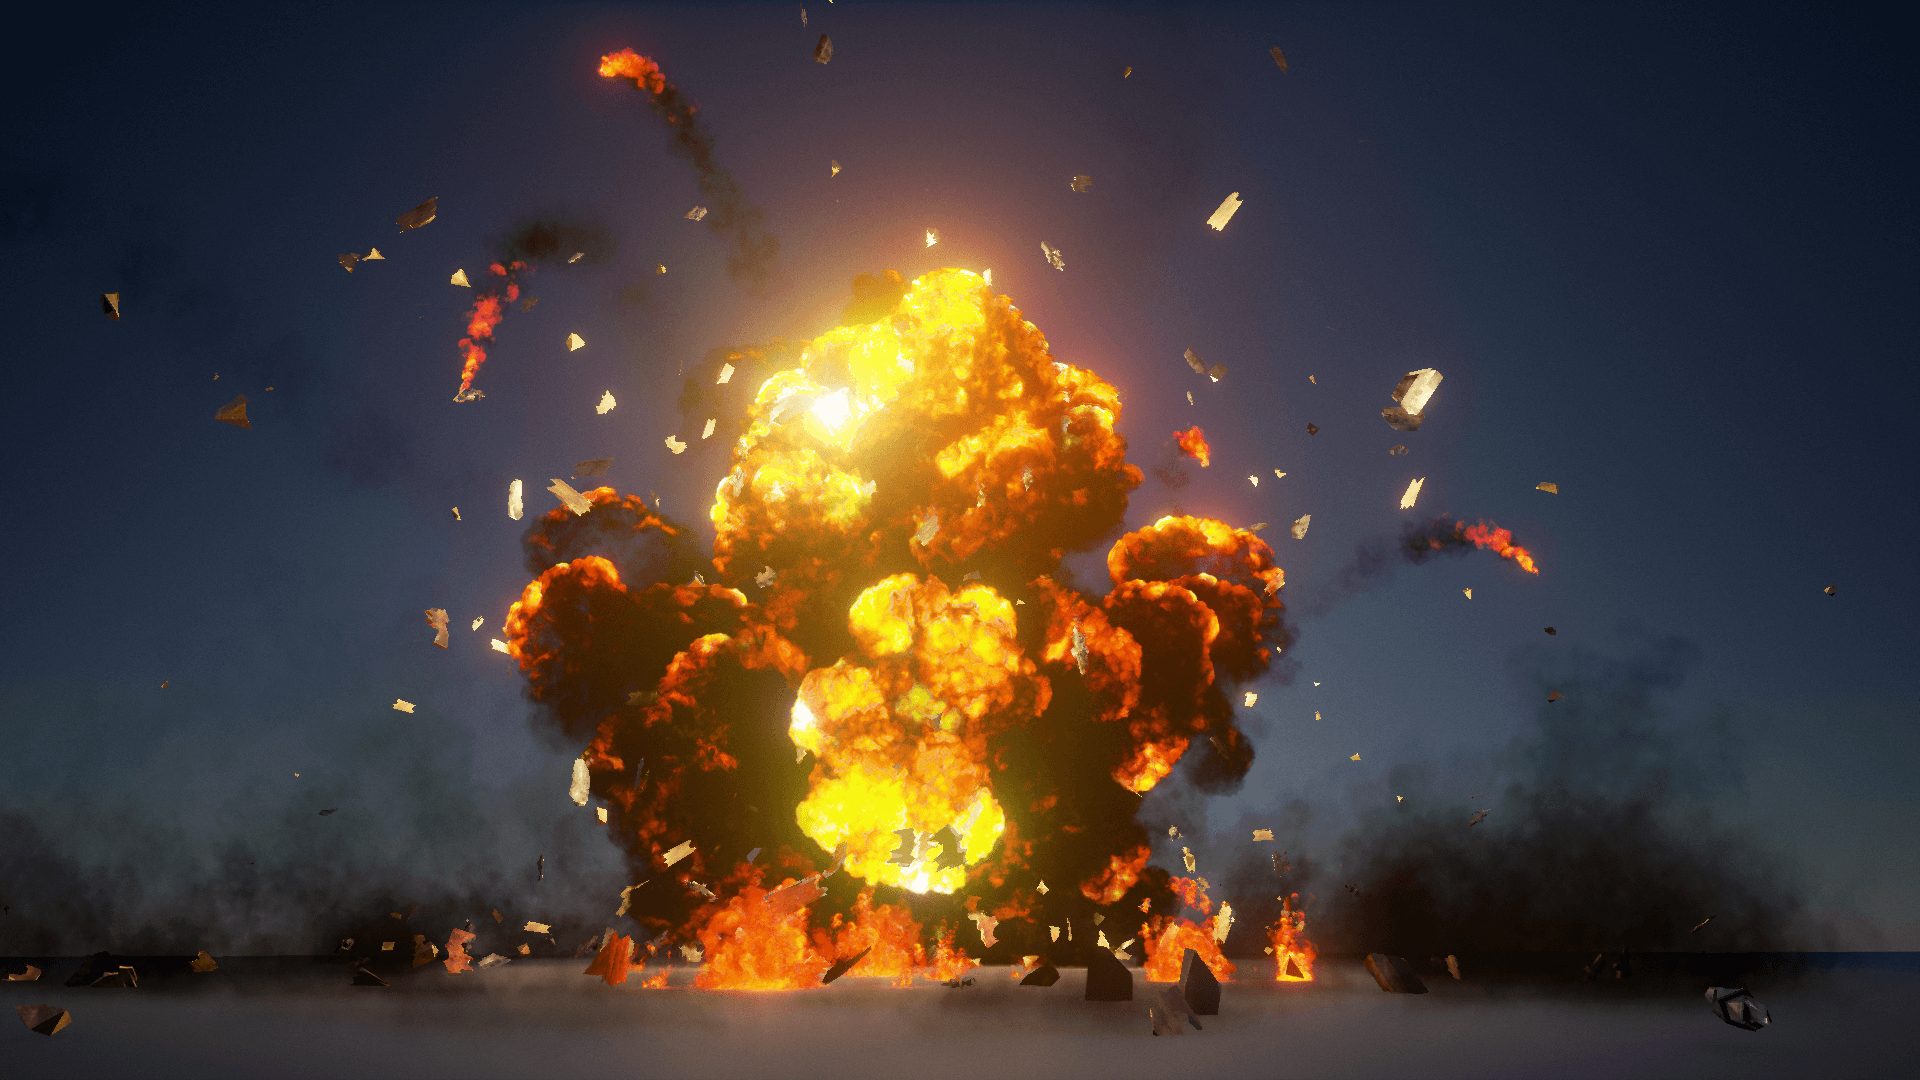 The Explosions Mega Pack